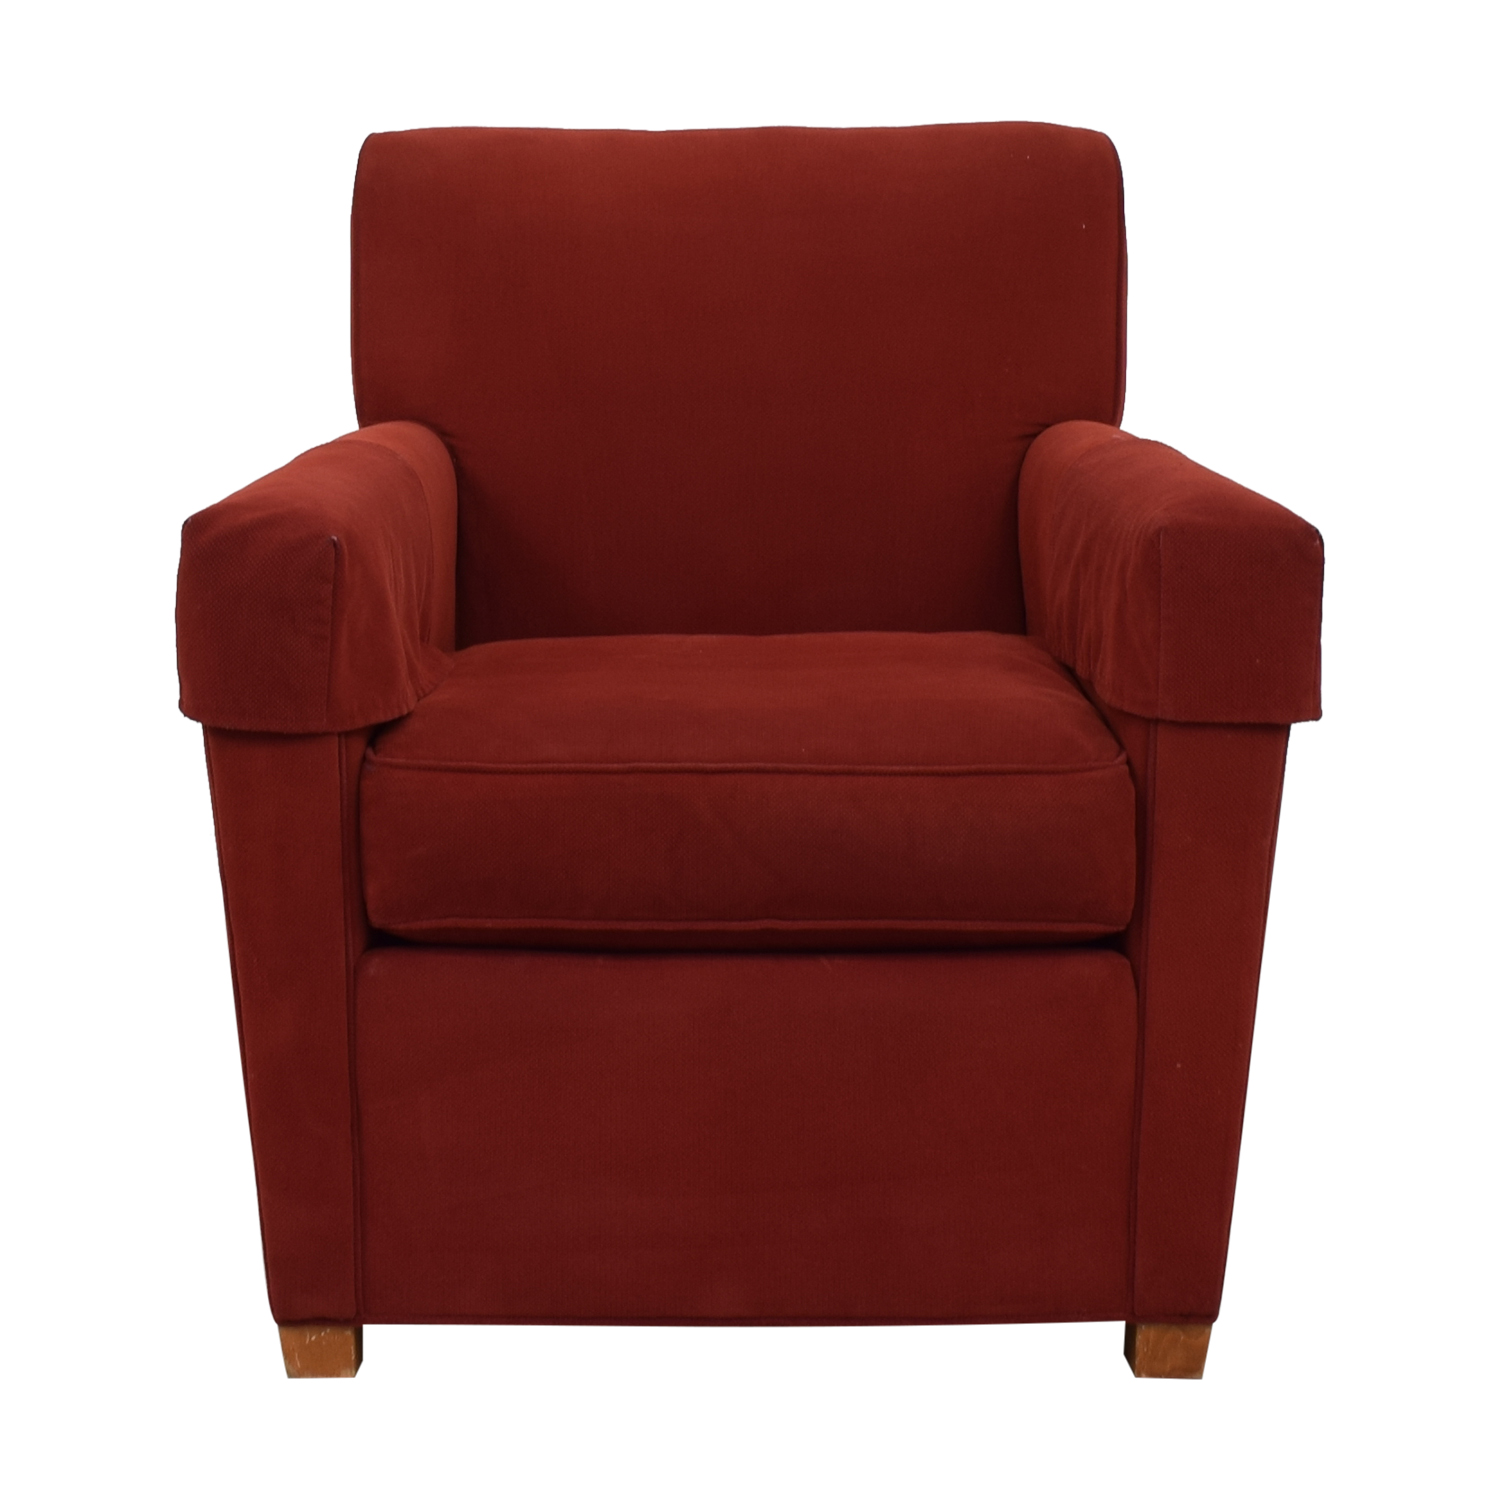 buy Stickley Red Arm Chair Stickley Accent Chairs